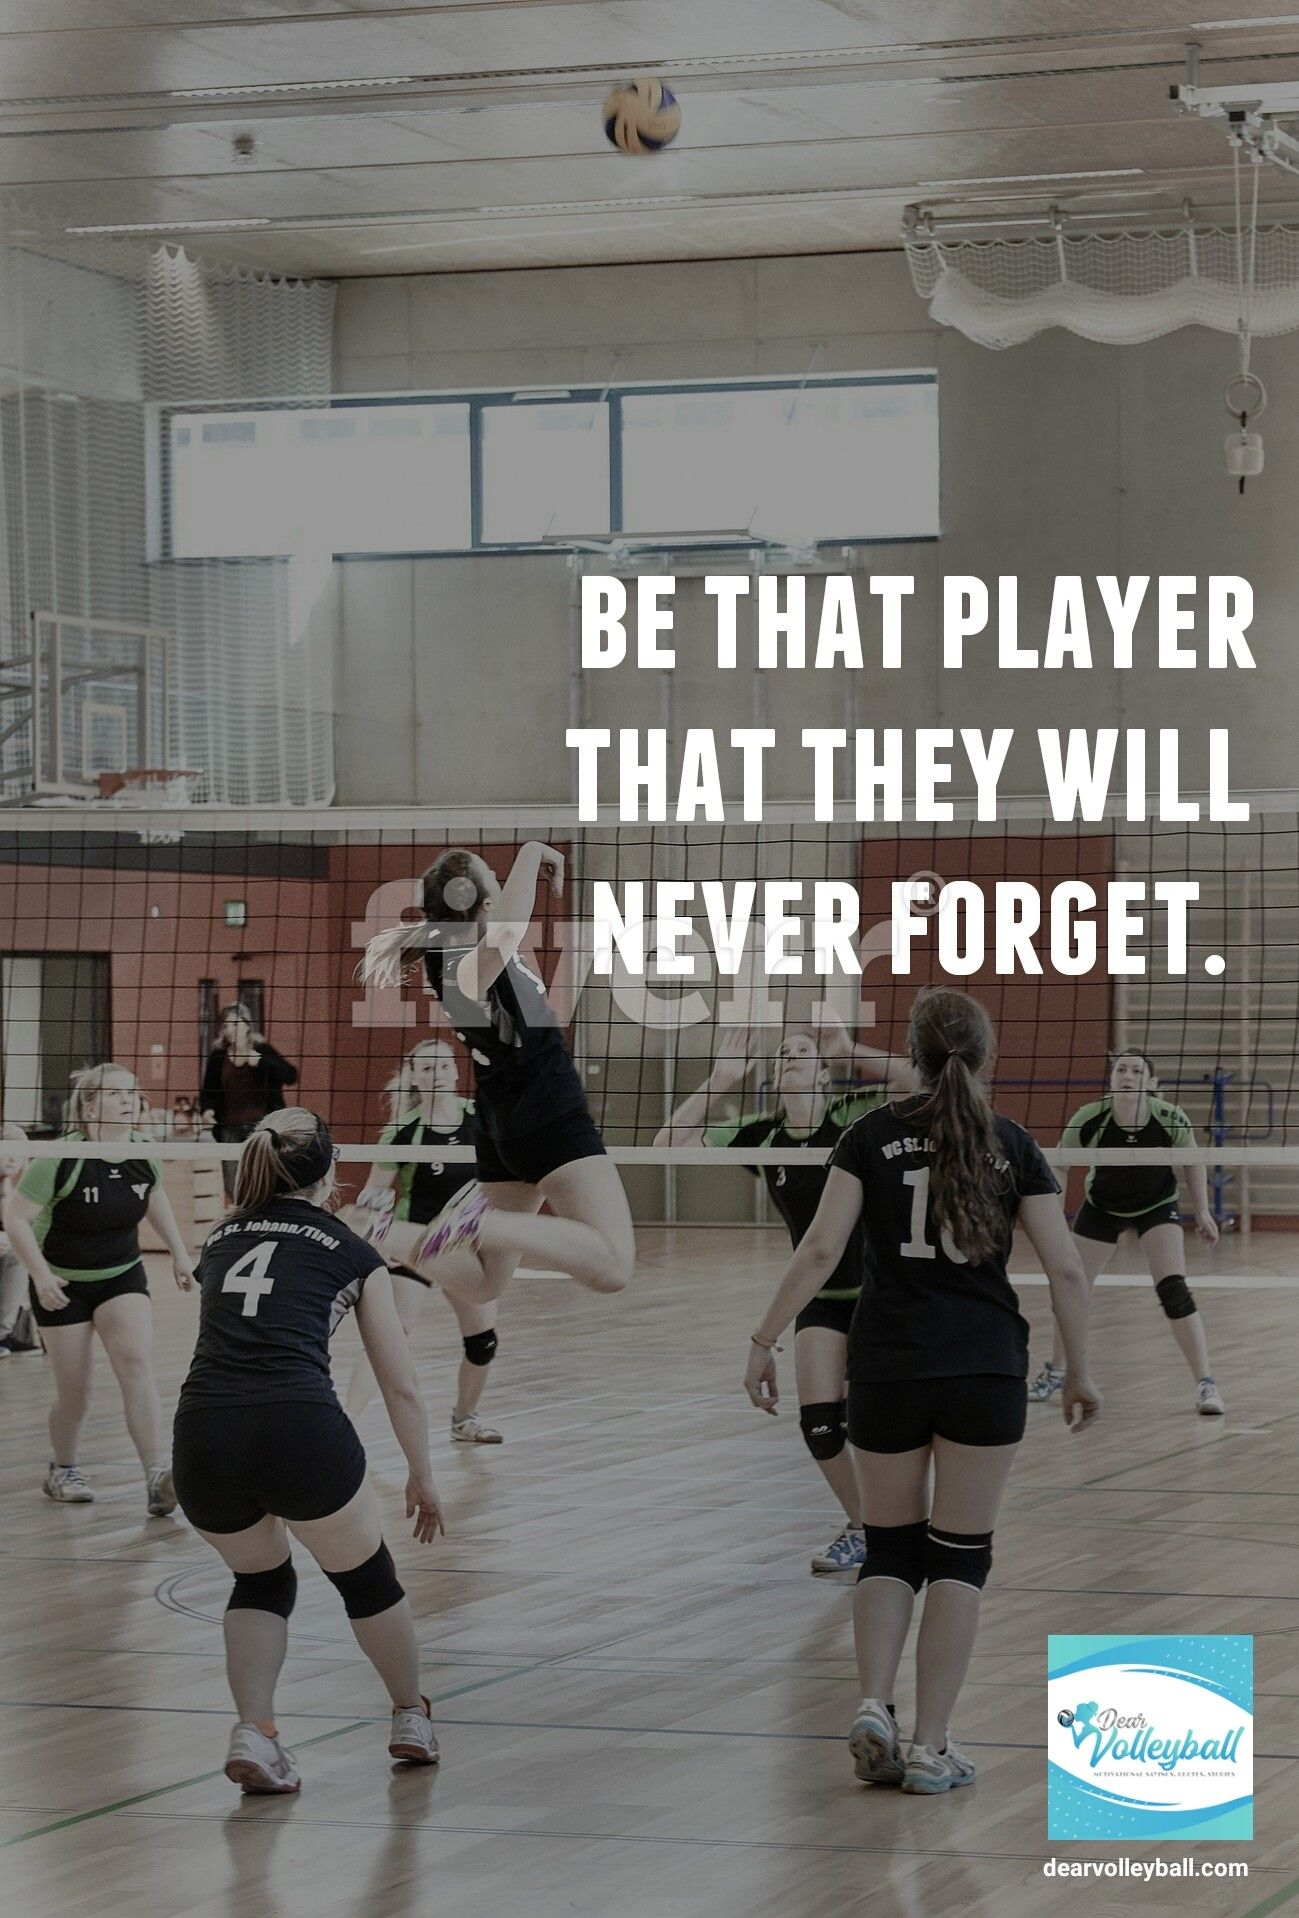 25 Quotes On Motivation With Inspiring Volleyball Pictures In 2020 Volleyball Inspiration Volleyball Quotes Volleyball Team Quotes